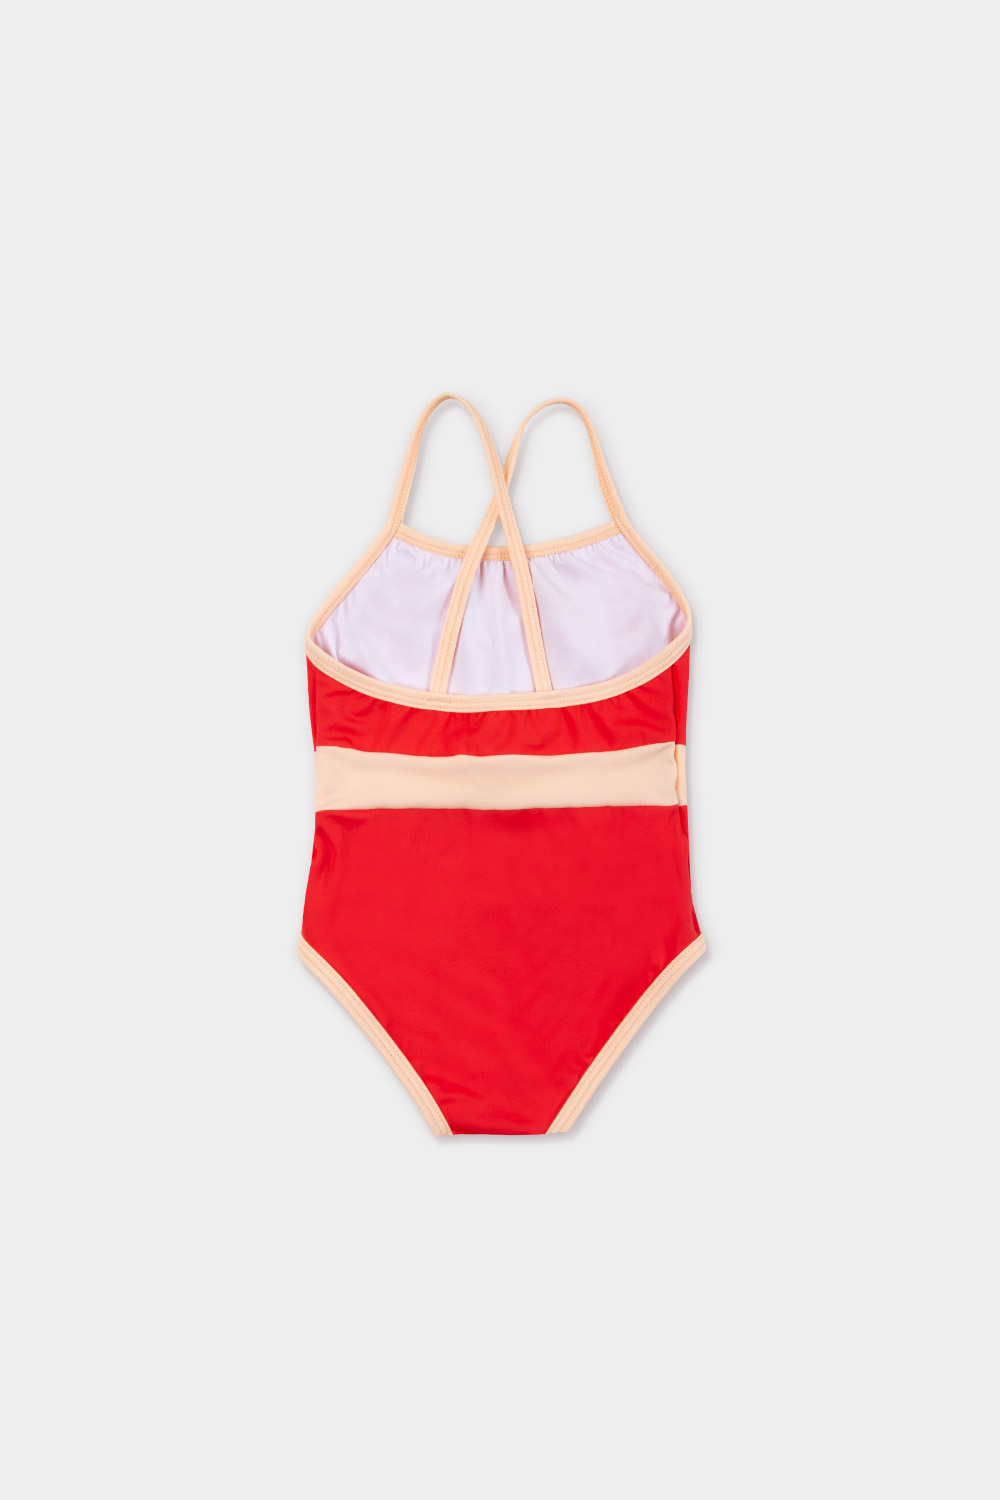 swimwear retrored one piece - product red - back